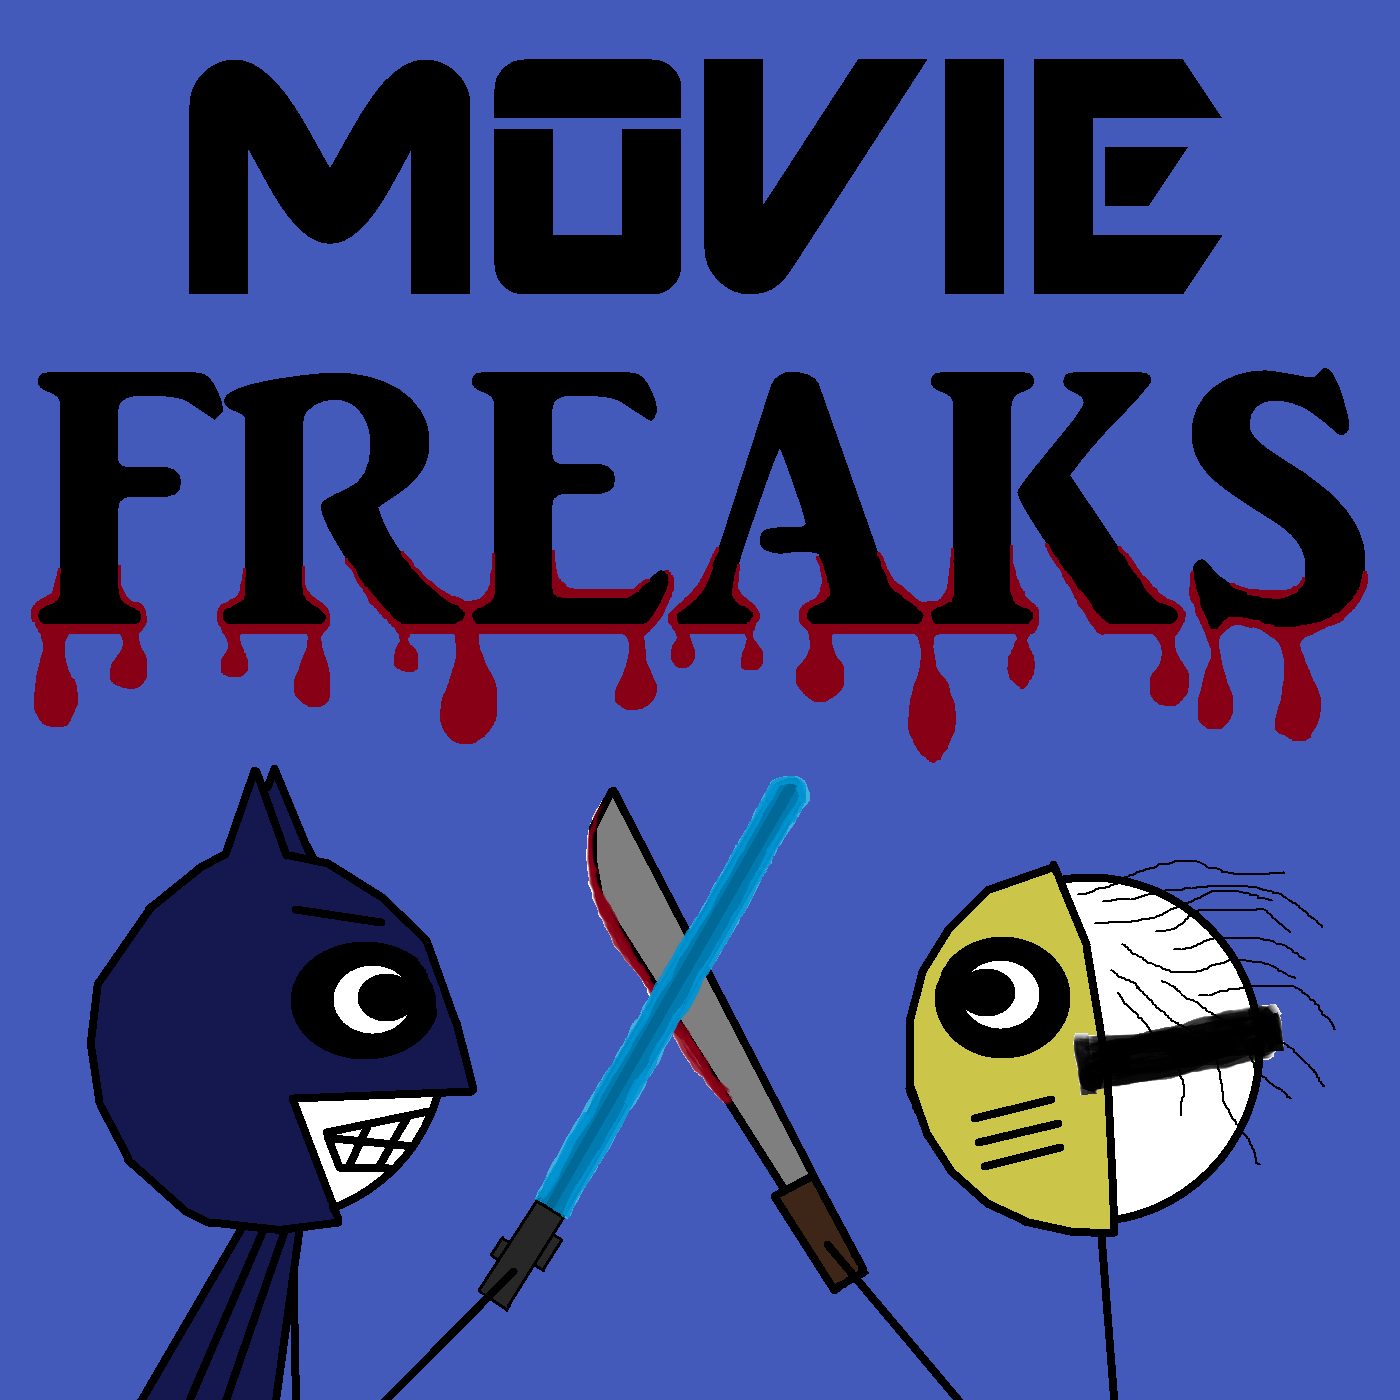 Movie Freaks By Erik Marner And Eugene Weaver On Apple Podcasts View Topic Fishing 14 2 Romex From Exterior Wall Light To Underbelly